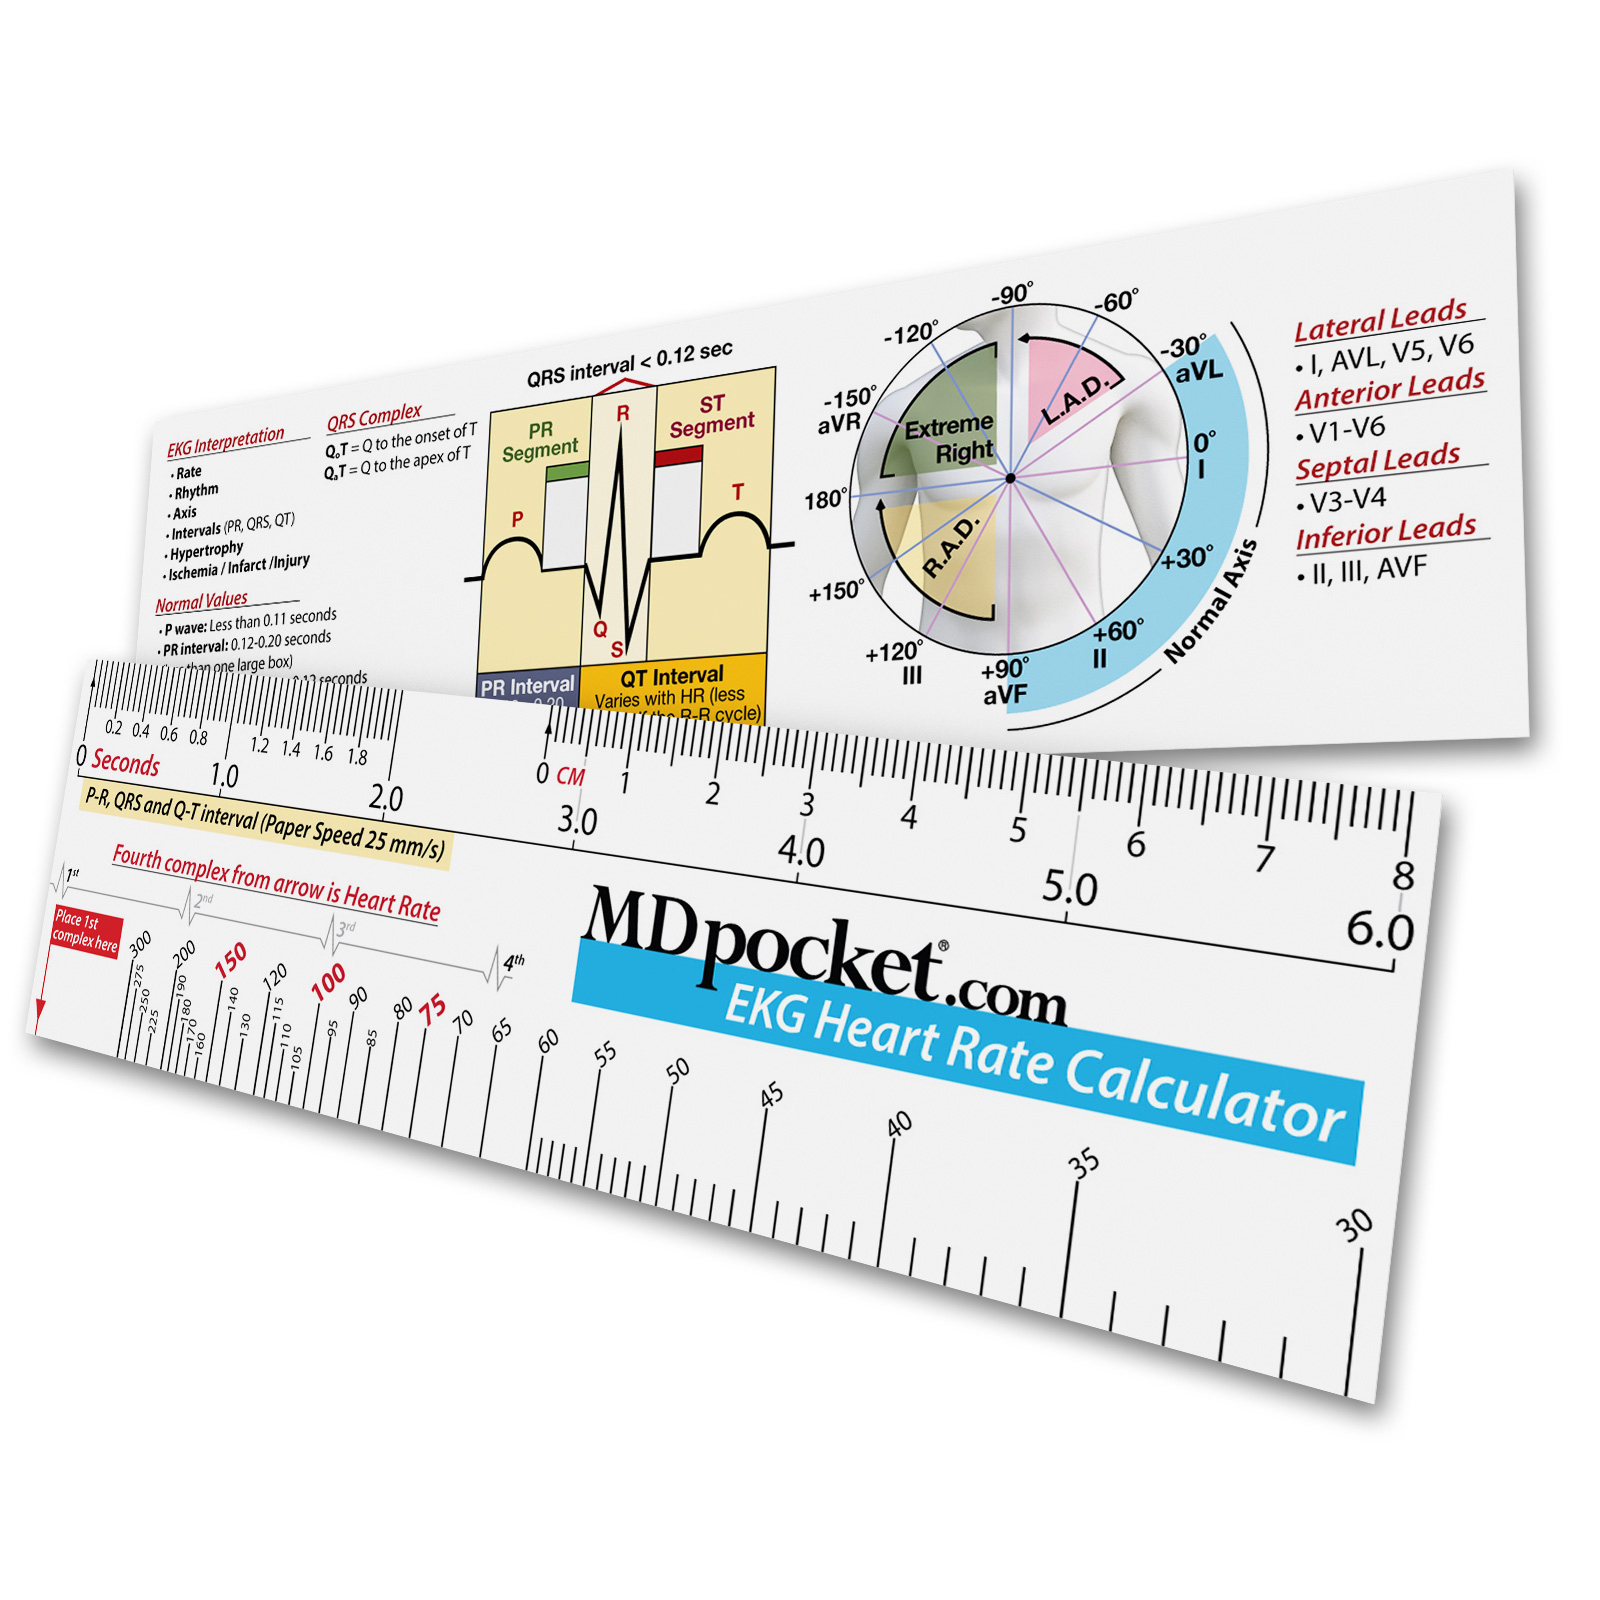 Ekg Heart Rate Calculator Ruler